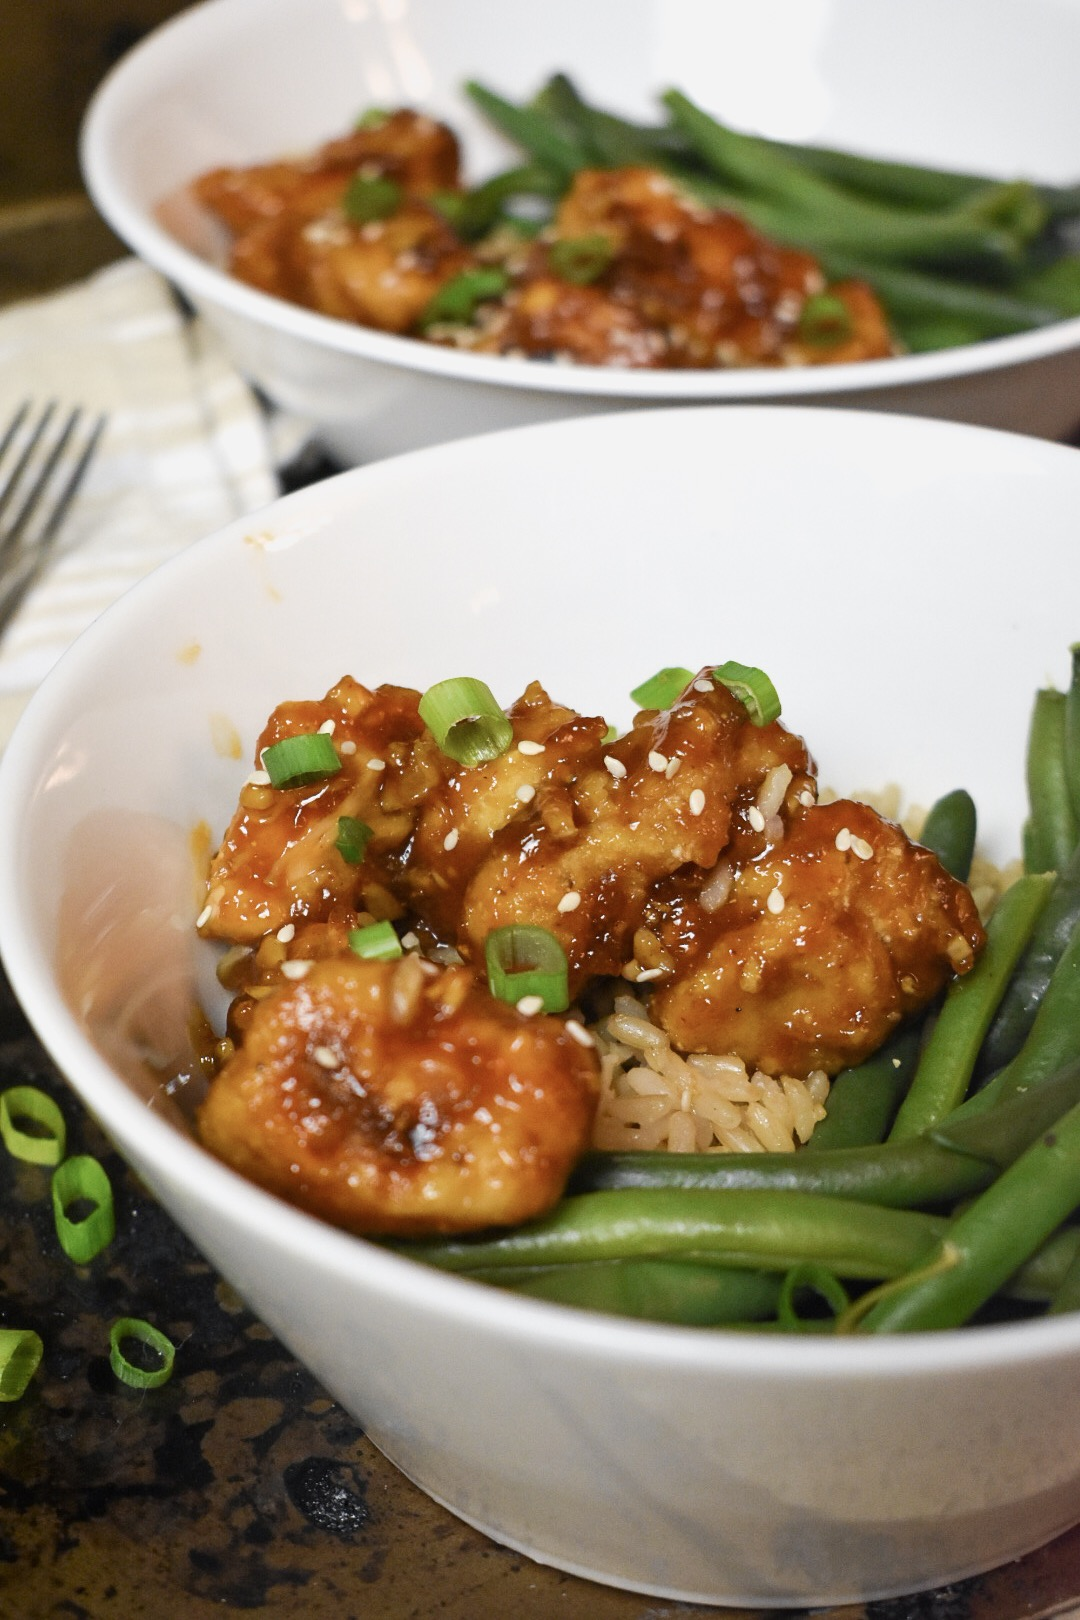 Order Chinese take-out no more! You can make your own Spicy Orange Chicken in the comfort of your home.